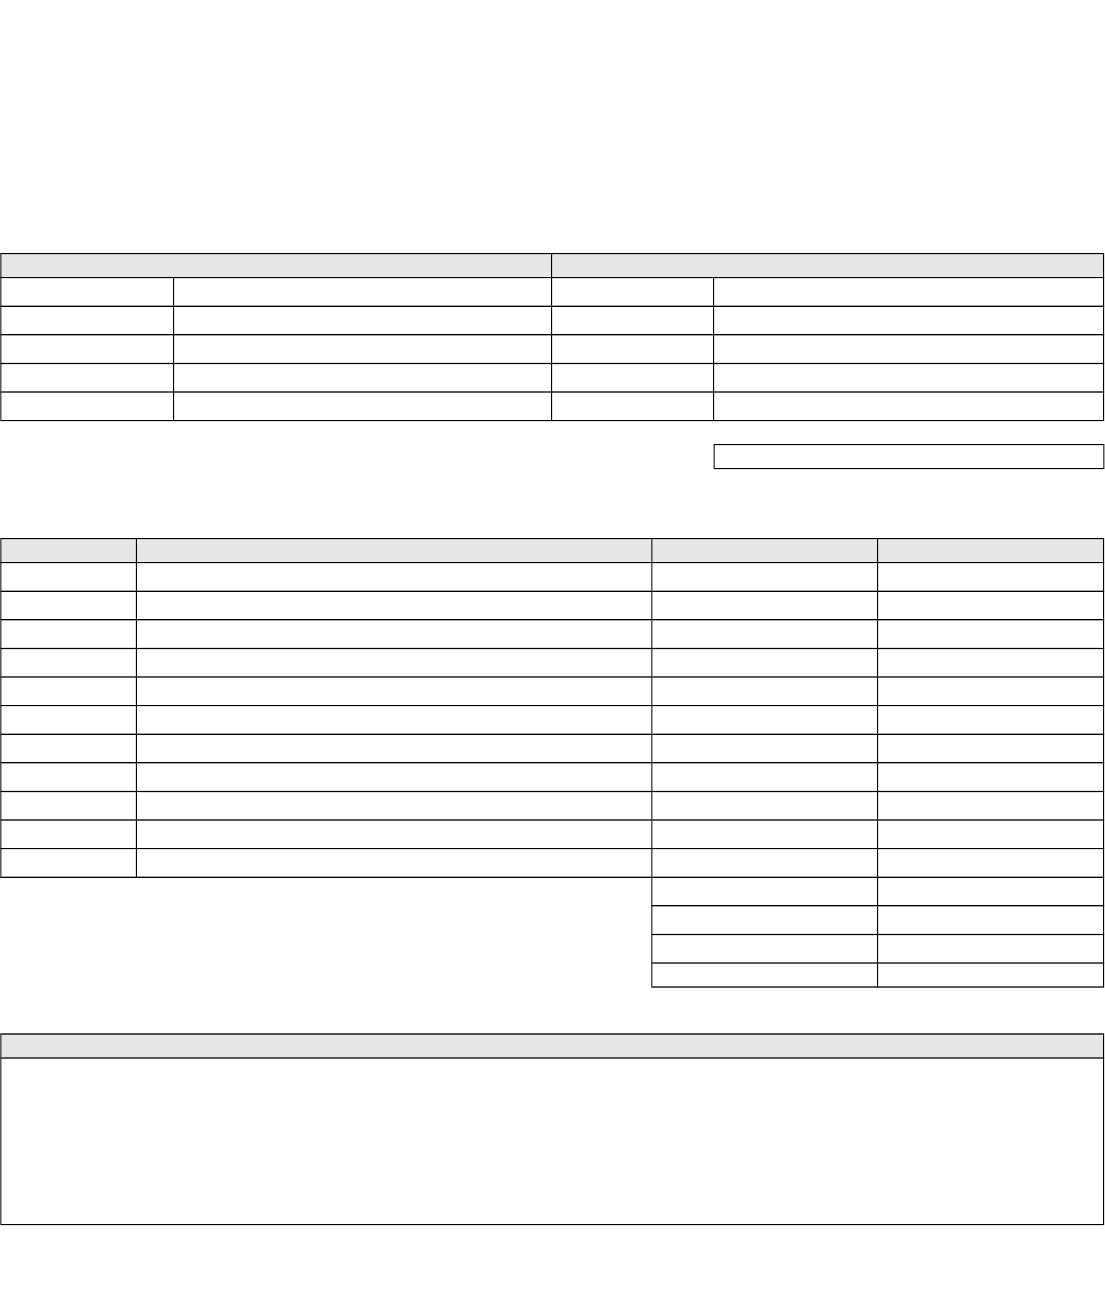 The Blank Invoice Template 2 can help you make a professional and – Blank Invoice Template